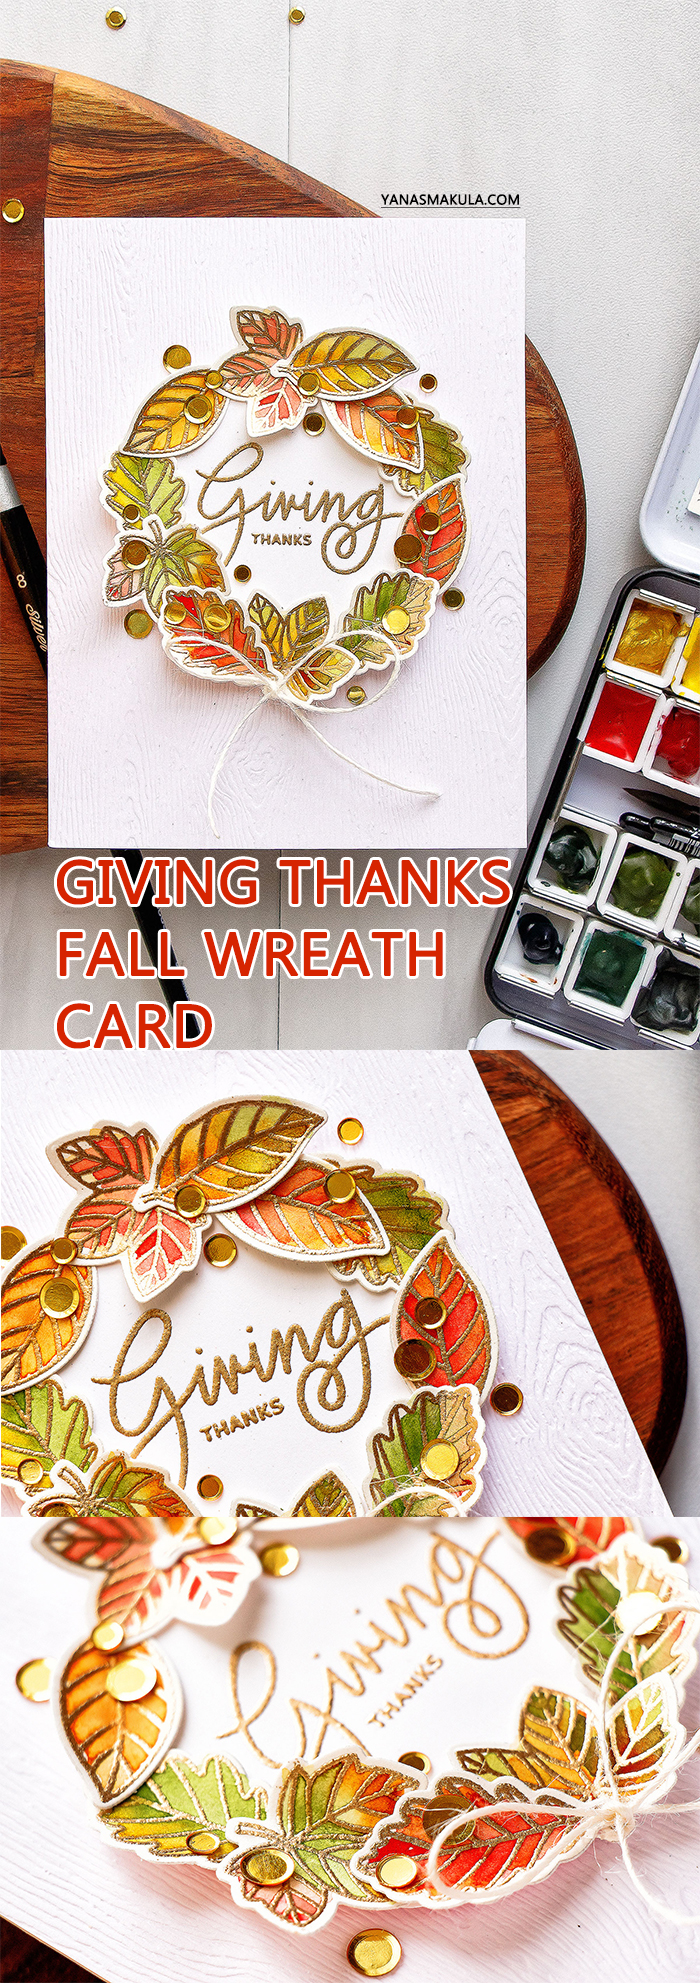 Pretty Pink Posh - Happy Turkey | Fall Leaves Watercolor Wreath card by Yana Smakula